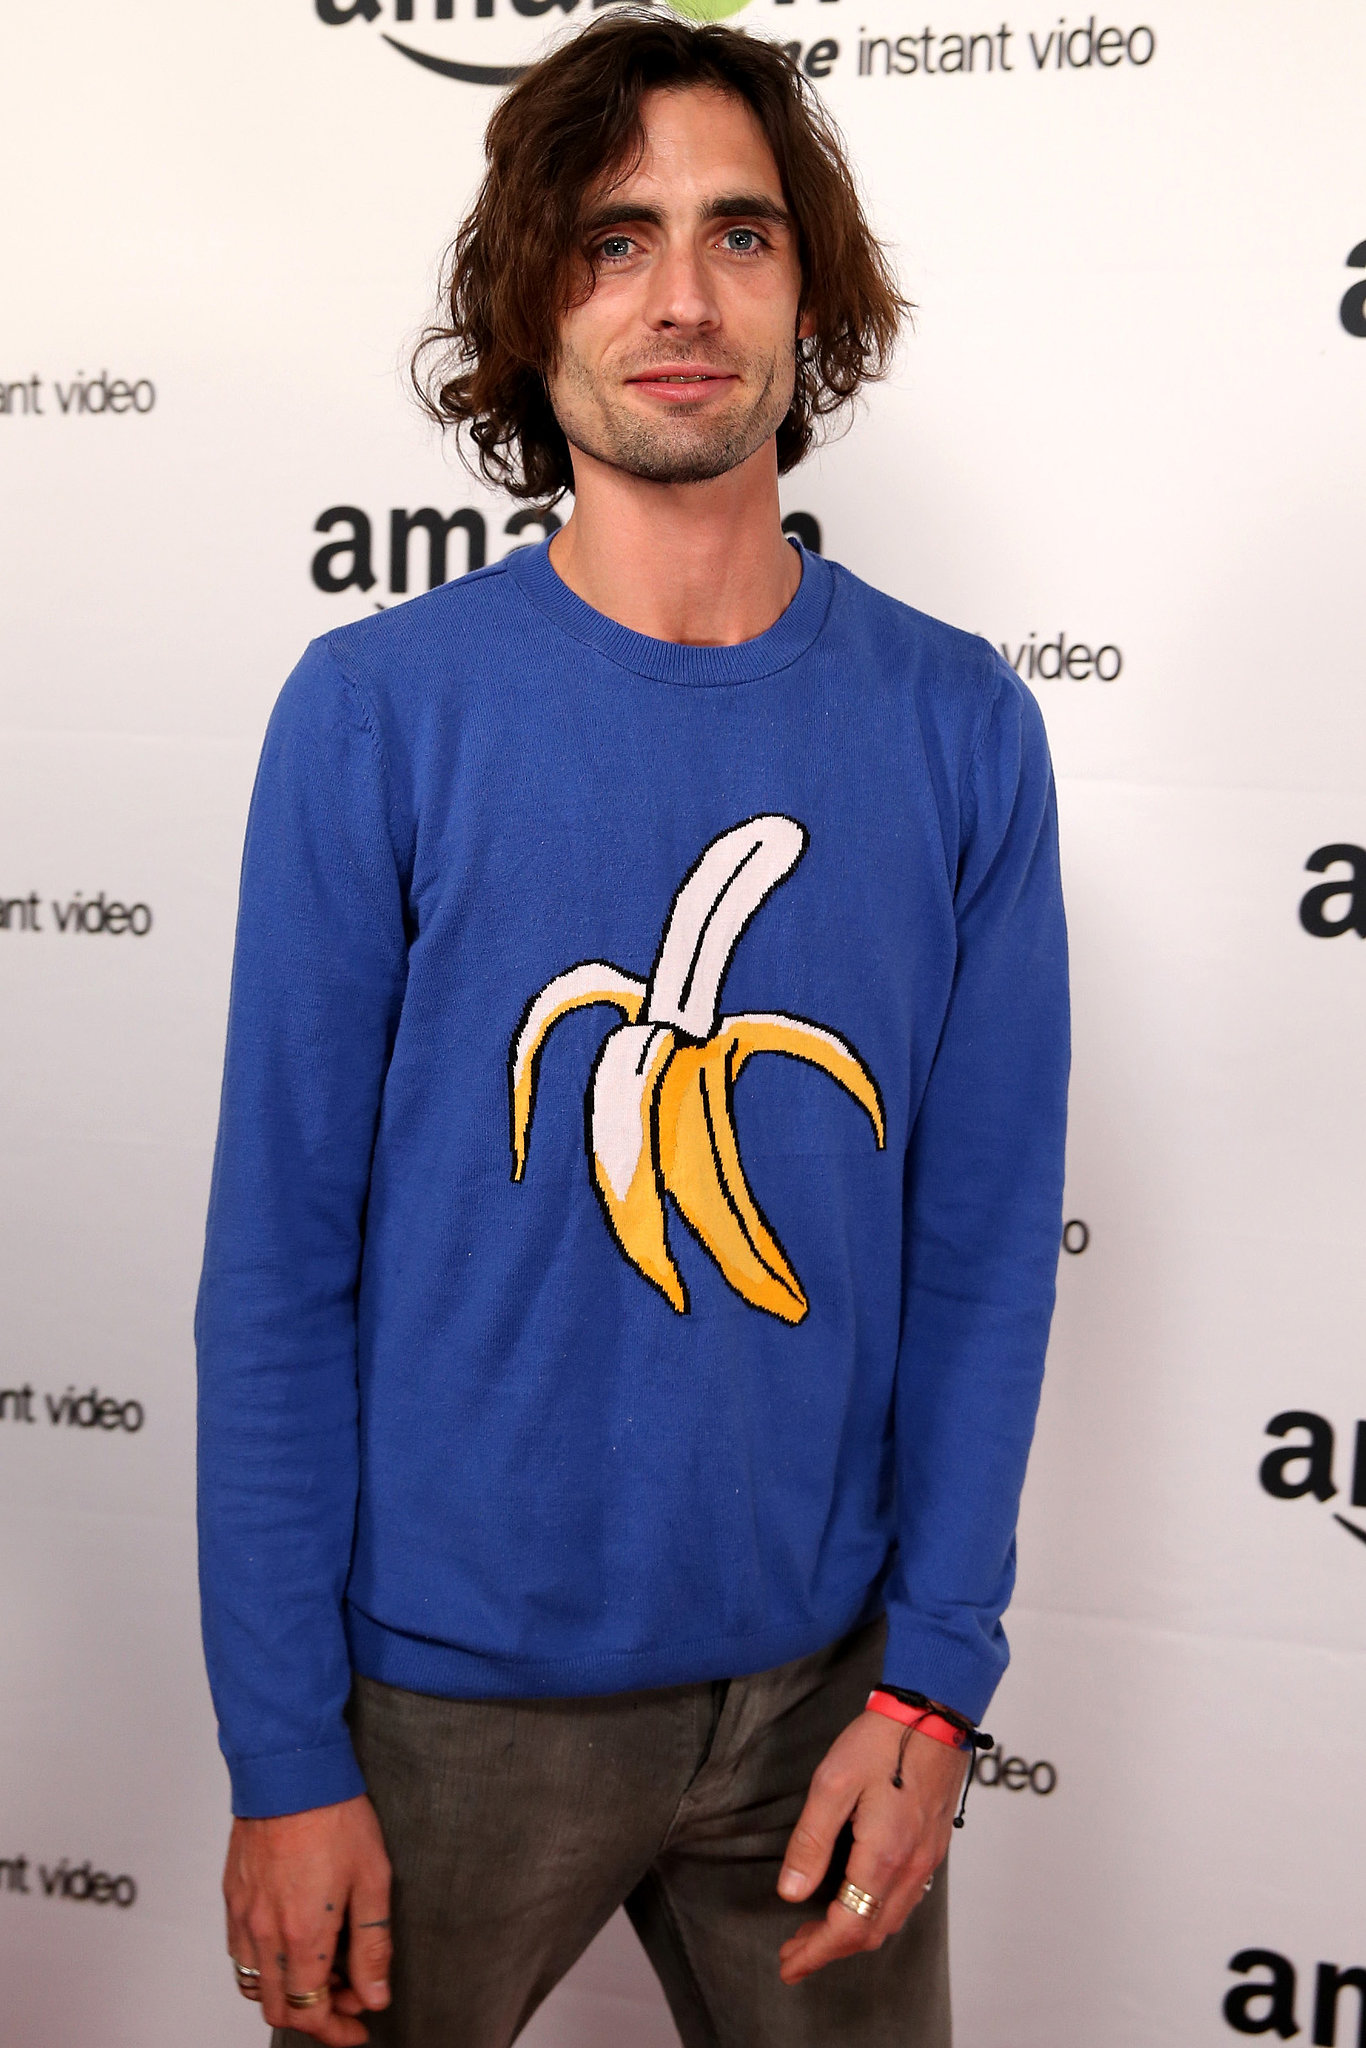 The All-American Rejects' frontman Tyson Ritter has been cast as Gregg Allman in the Allman Brothers biopic, Midnight Rider. Fans of Parenthood may recognize Ritter as Oliver, but this will be his first big-screen role.